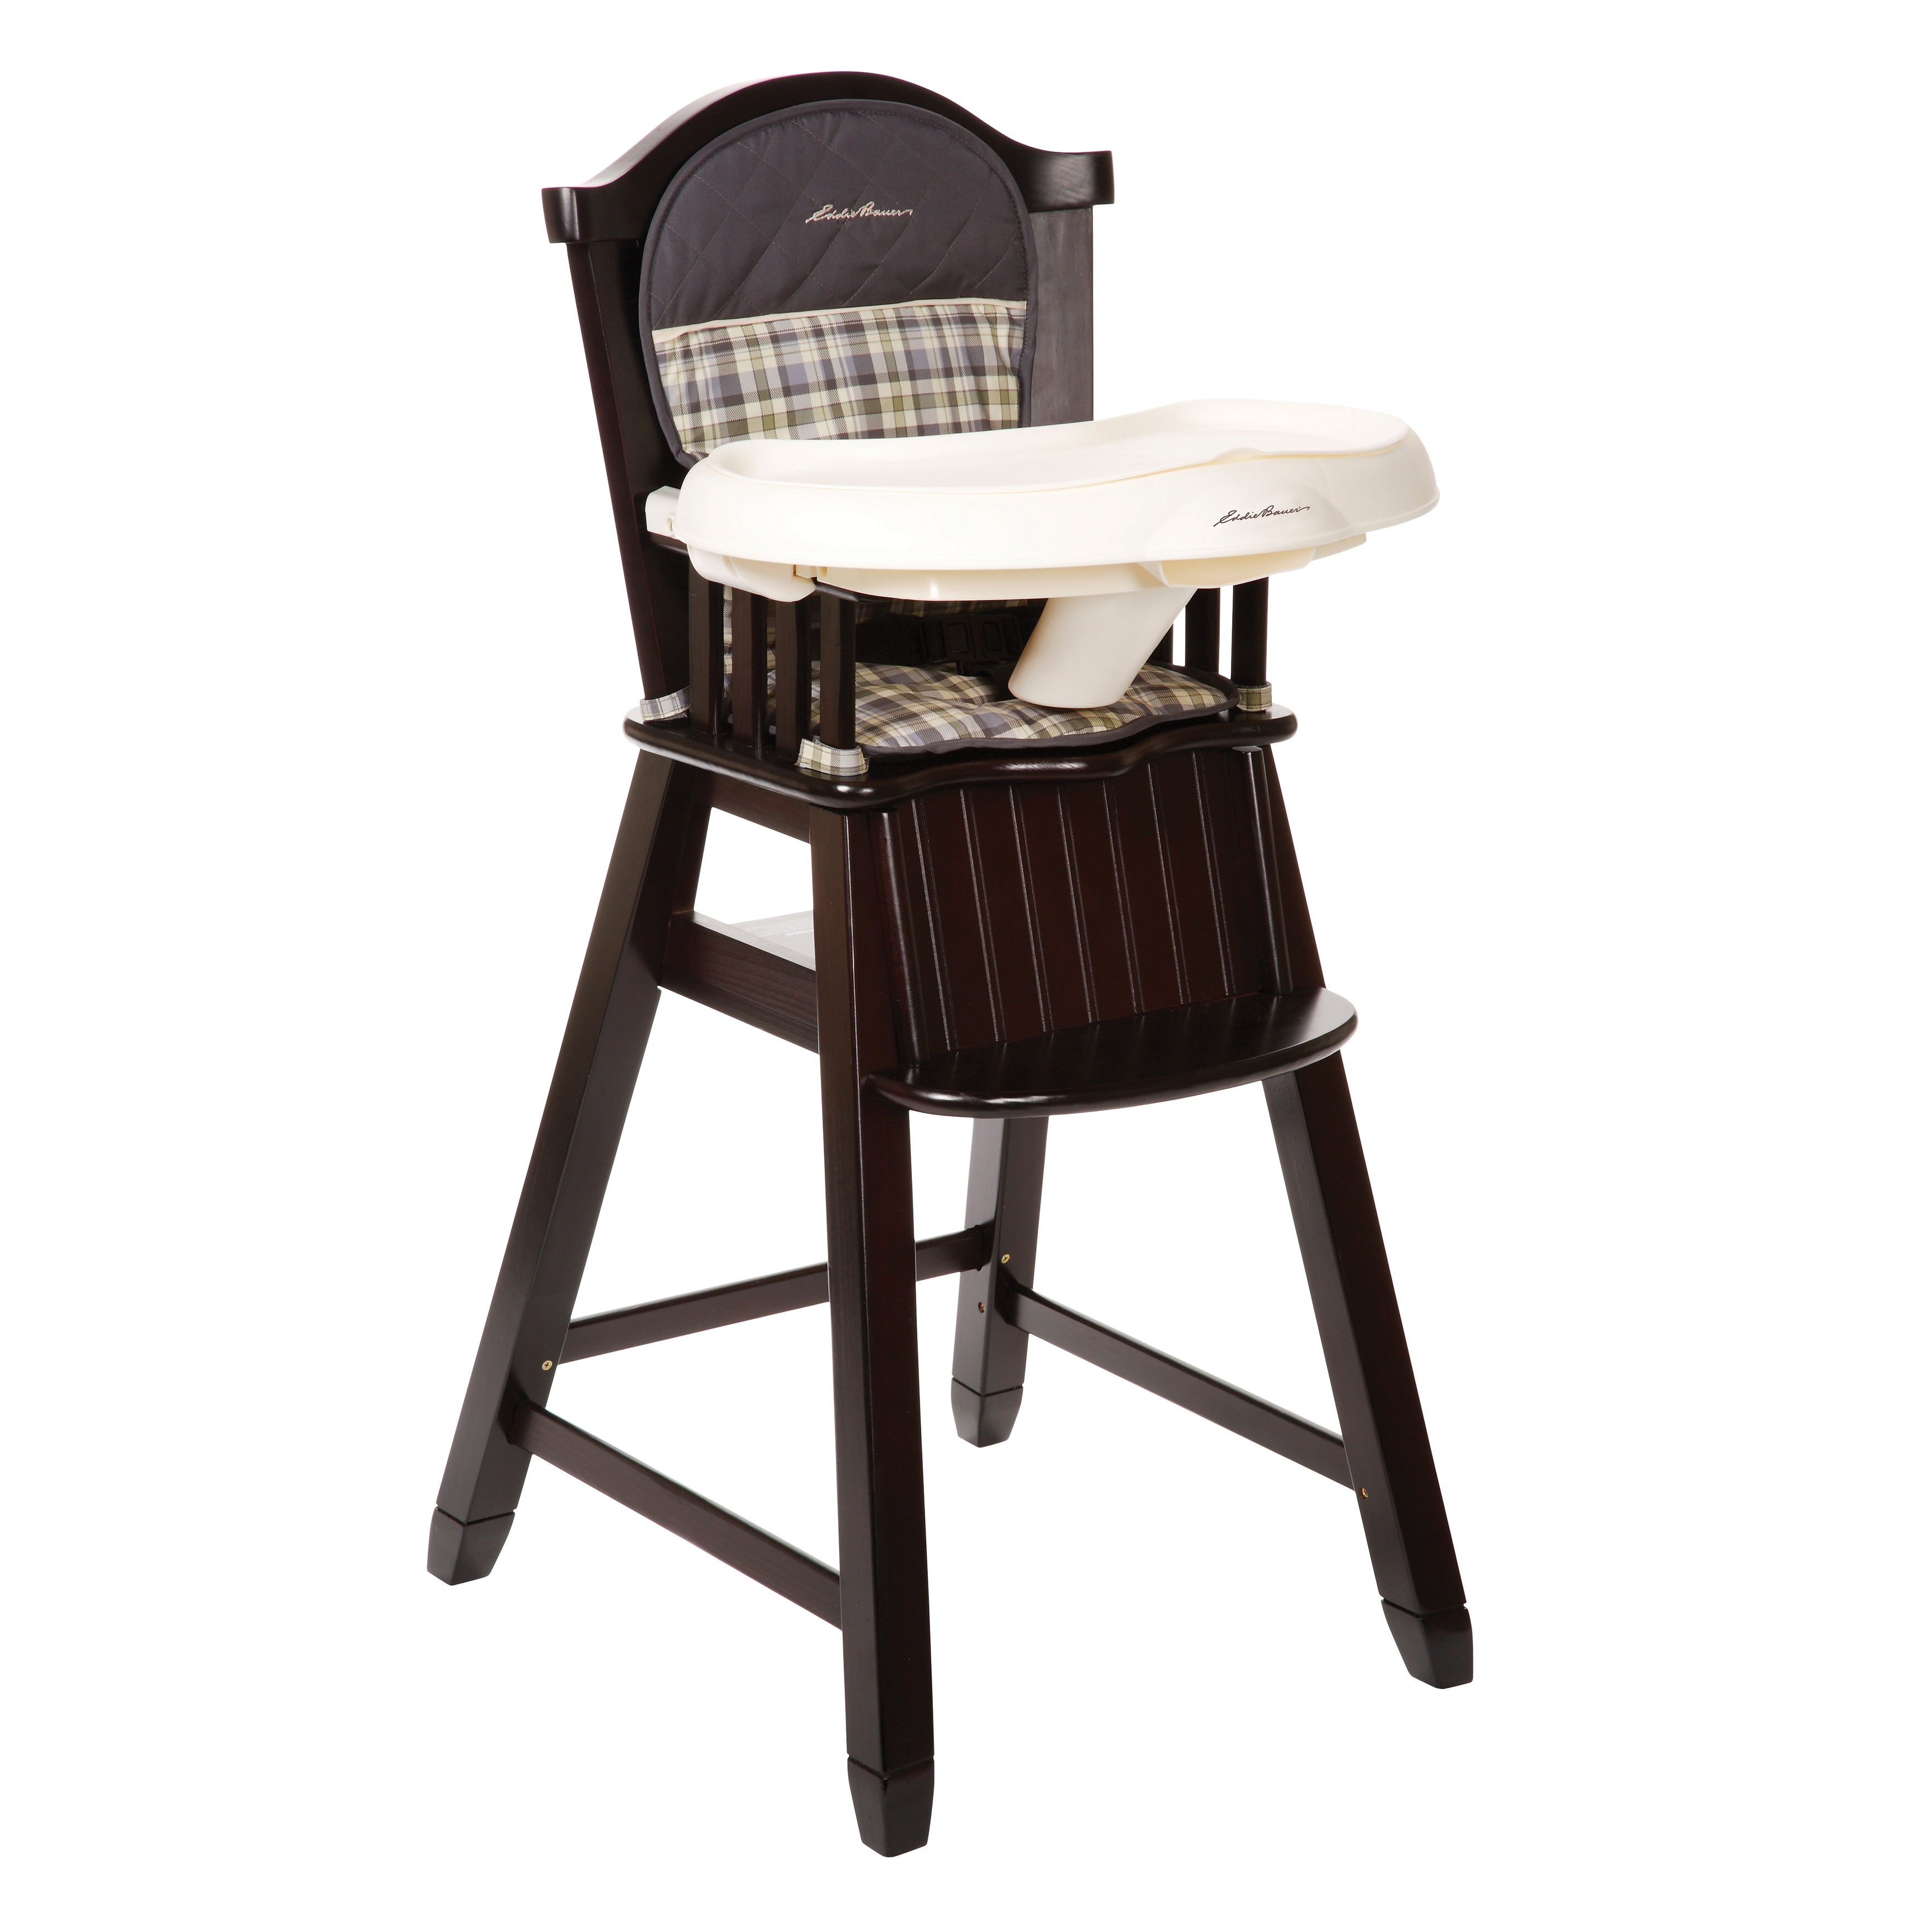 Overstock.com Eddie Bauer Classic High Chair in Colfax at Sears.com